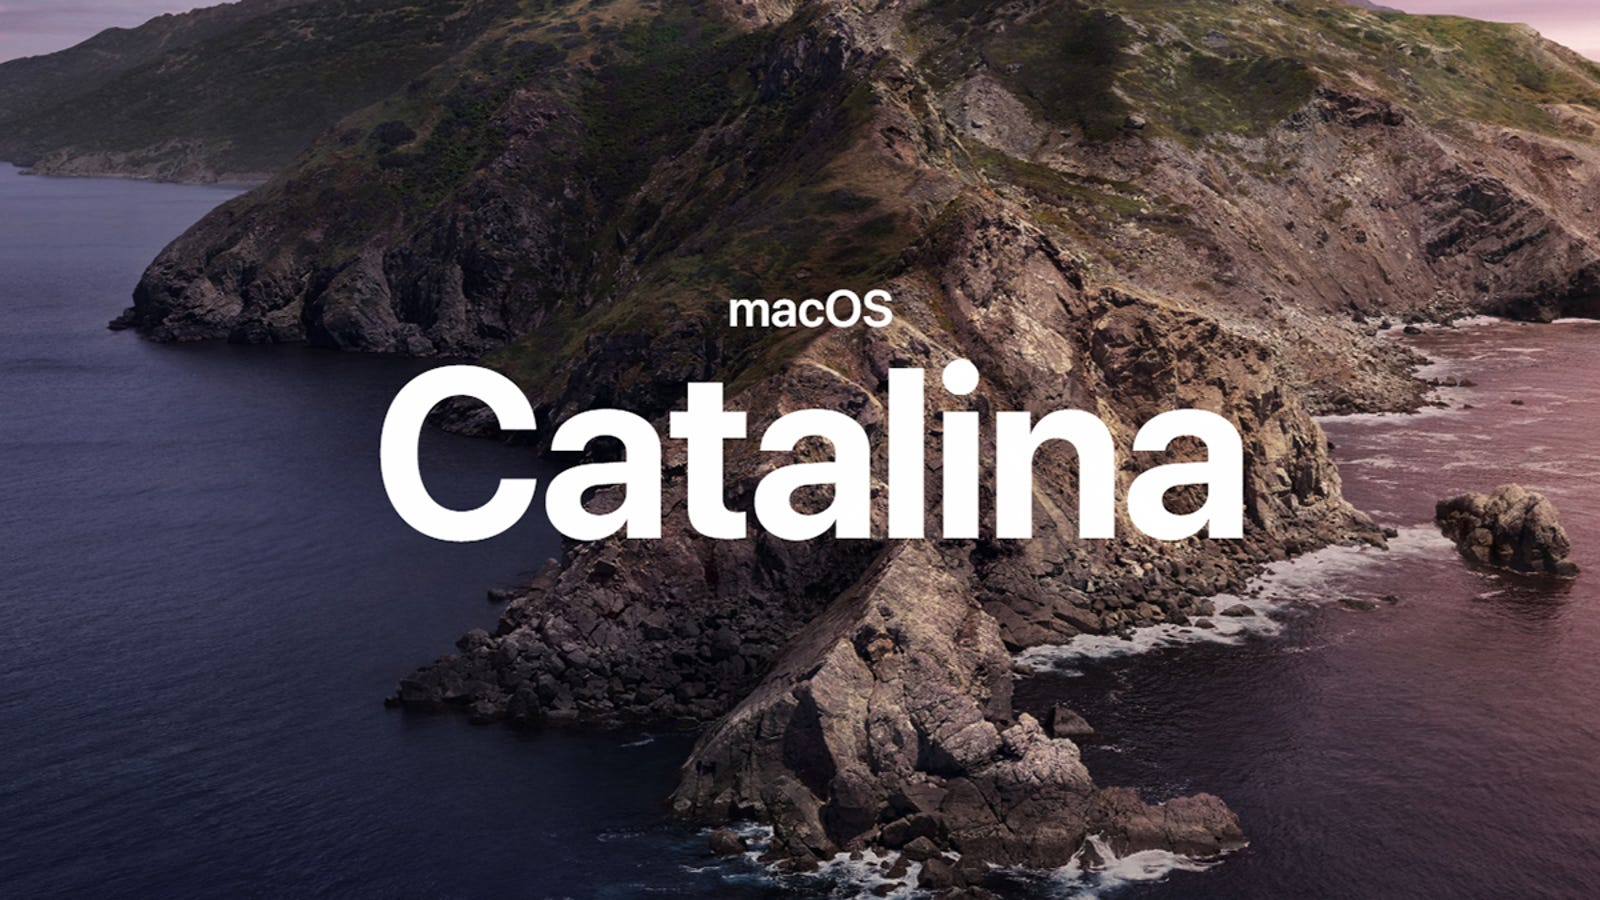 12 Things You Can Do in macOS Catalina That You Couldn't Before